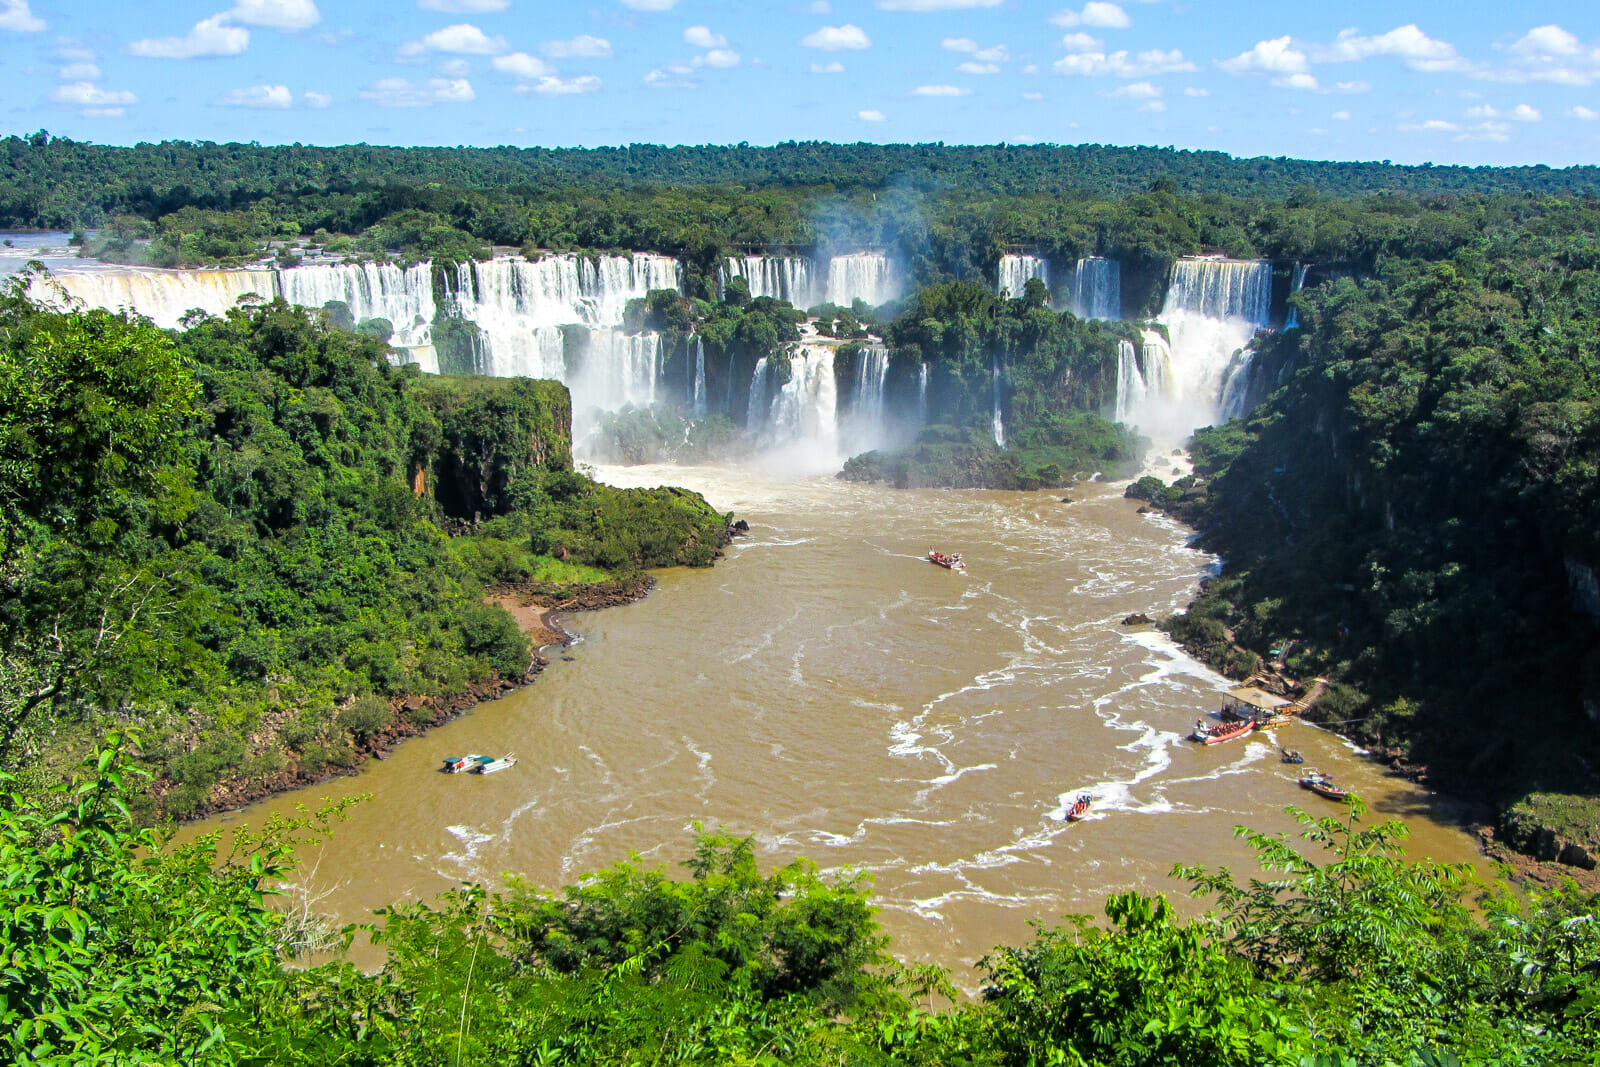 The natural beauty of Iguazu Falls in South America